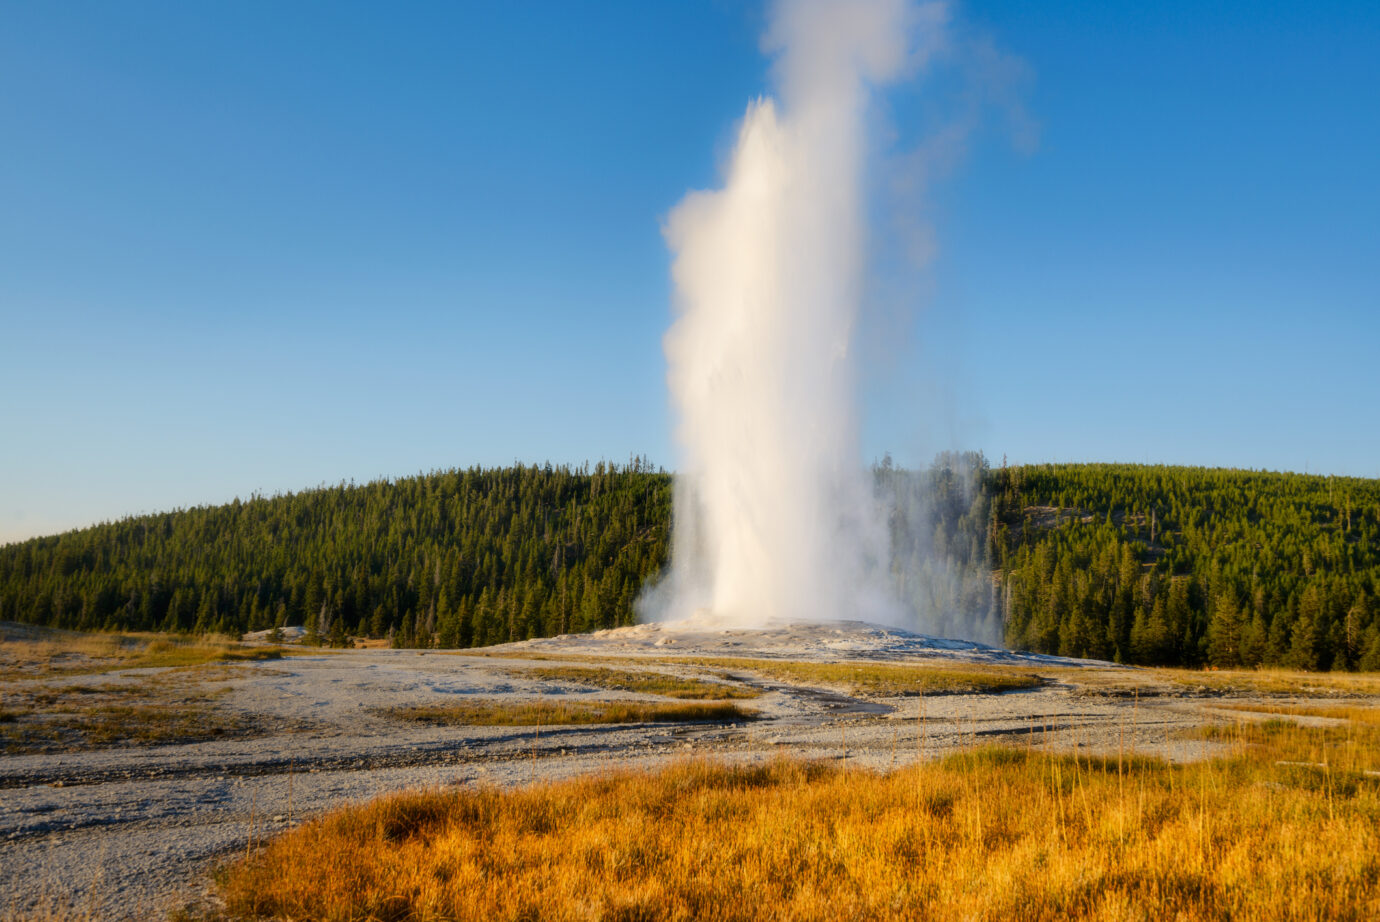 Hot spring explosion. Old Faithful Geyser, Yellowstone National Park, Wyoming, USA